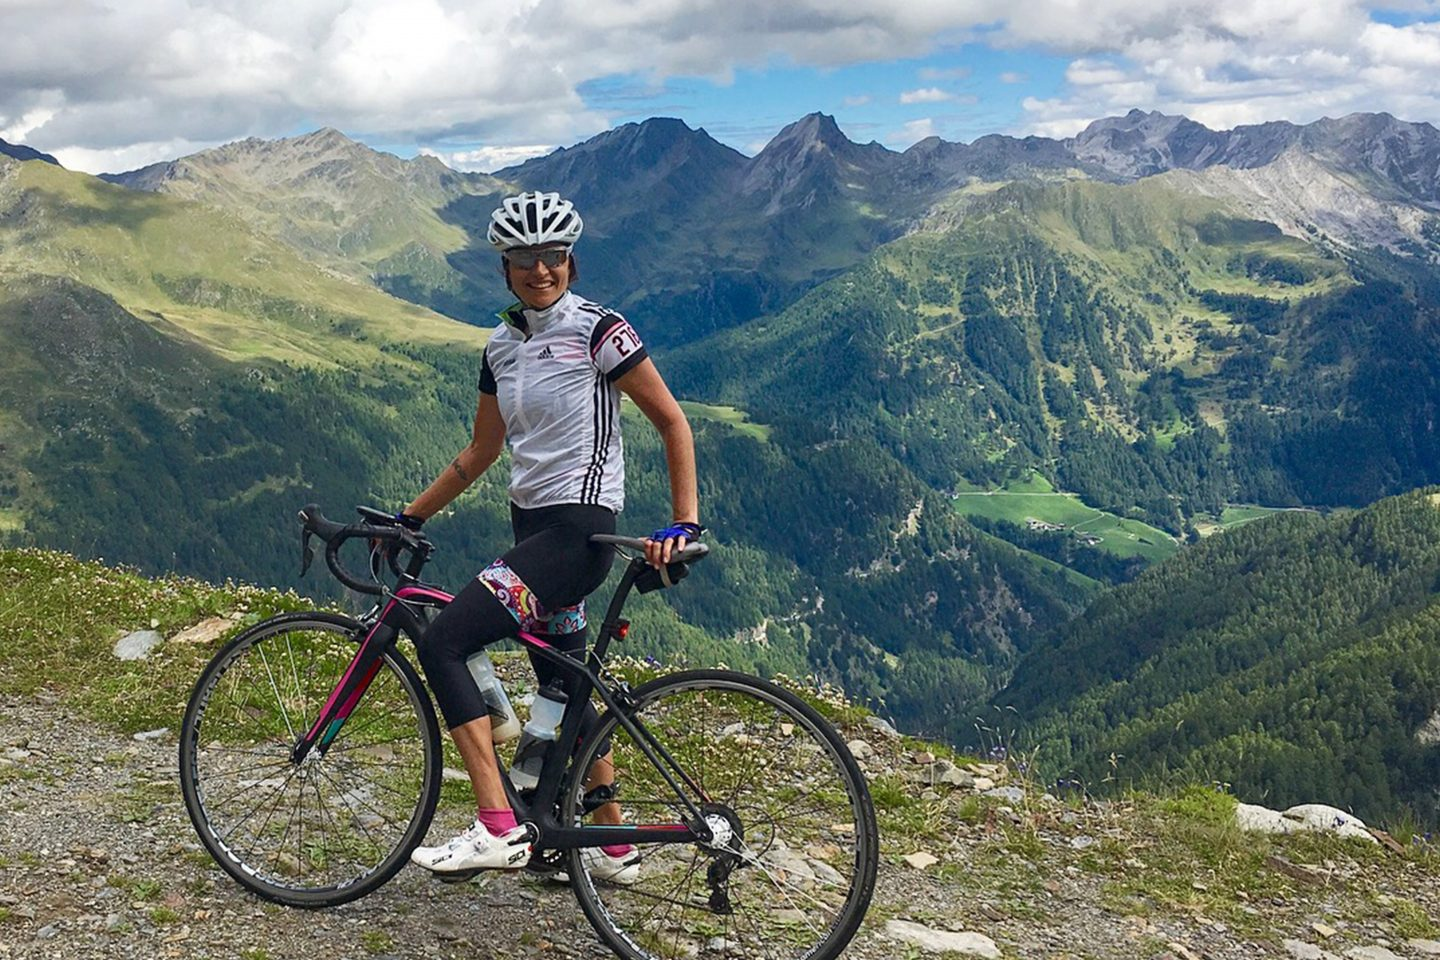 A female cyclist takes a rest on her bike on top of a mountain range on a sunny day. cycling, biker, biking, passion, sport, hobby, fitness, motivation.